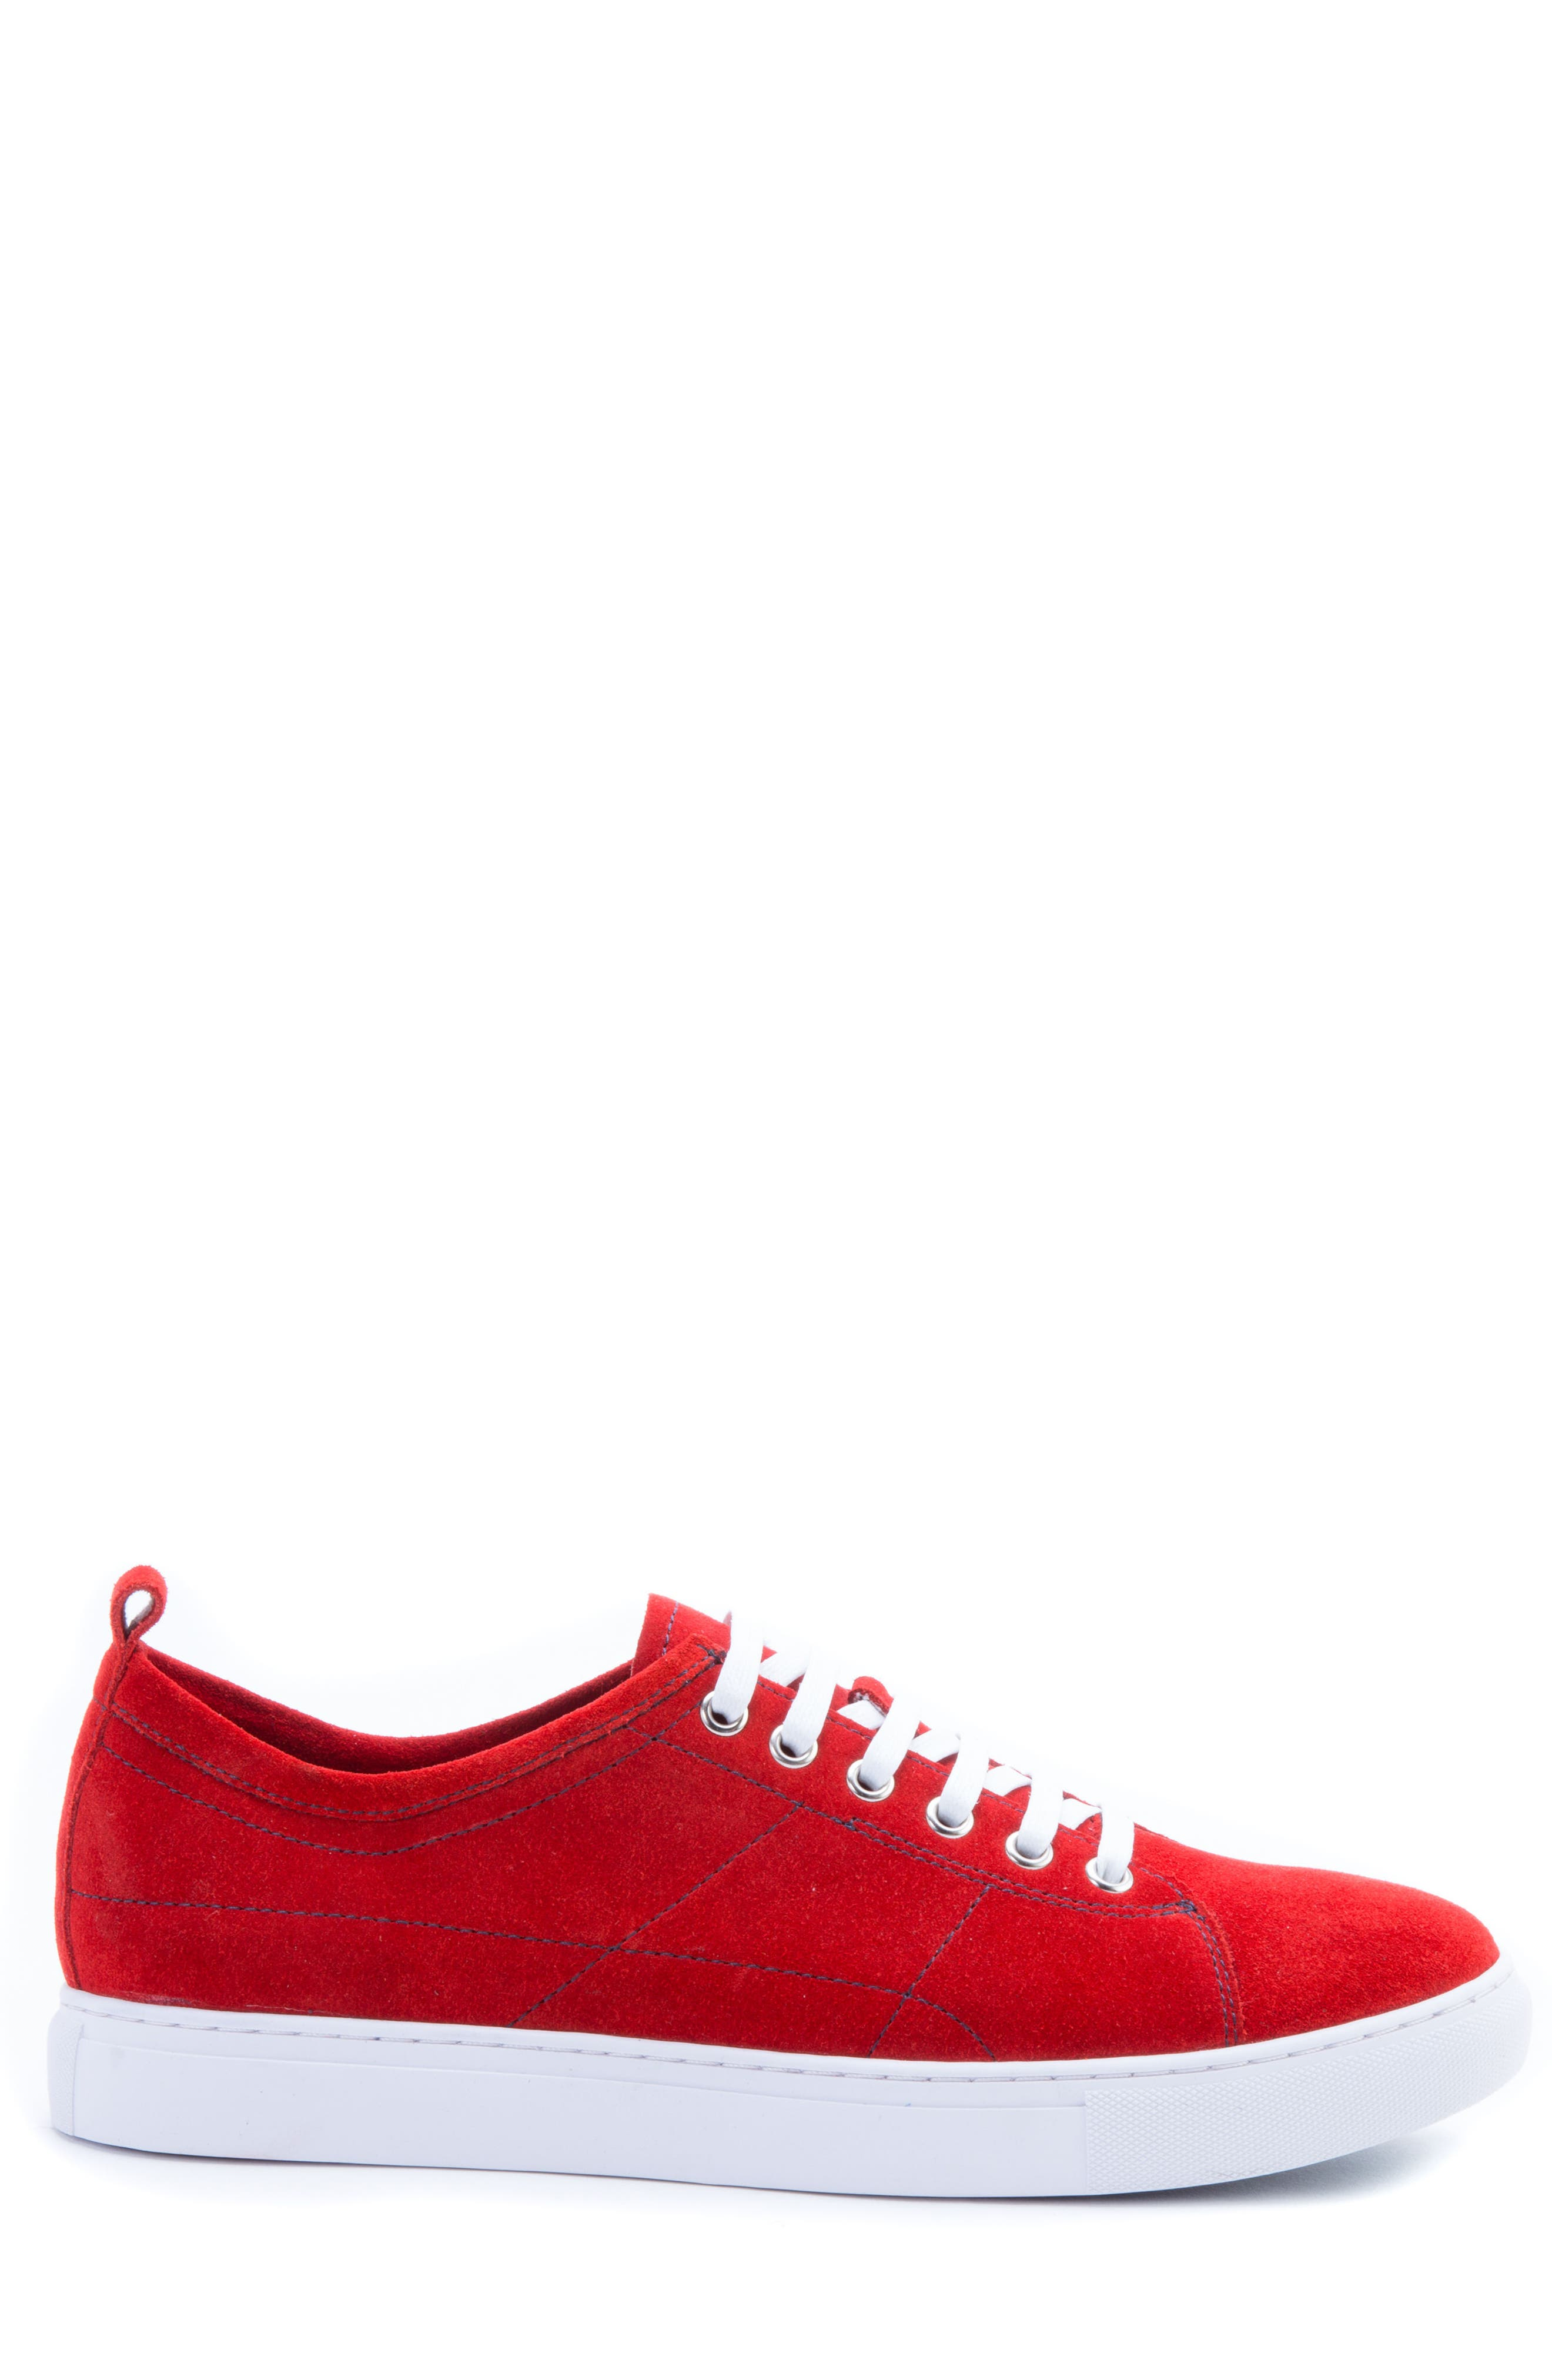 Ernesto Low Top Sneaker,                             Alternate thumbnail 3, color,                             Red Suede